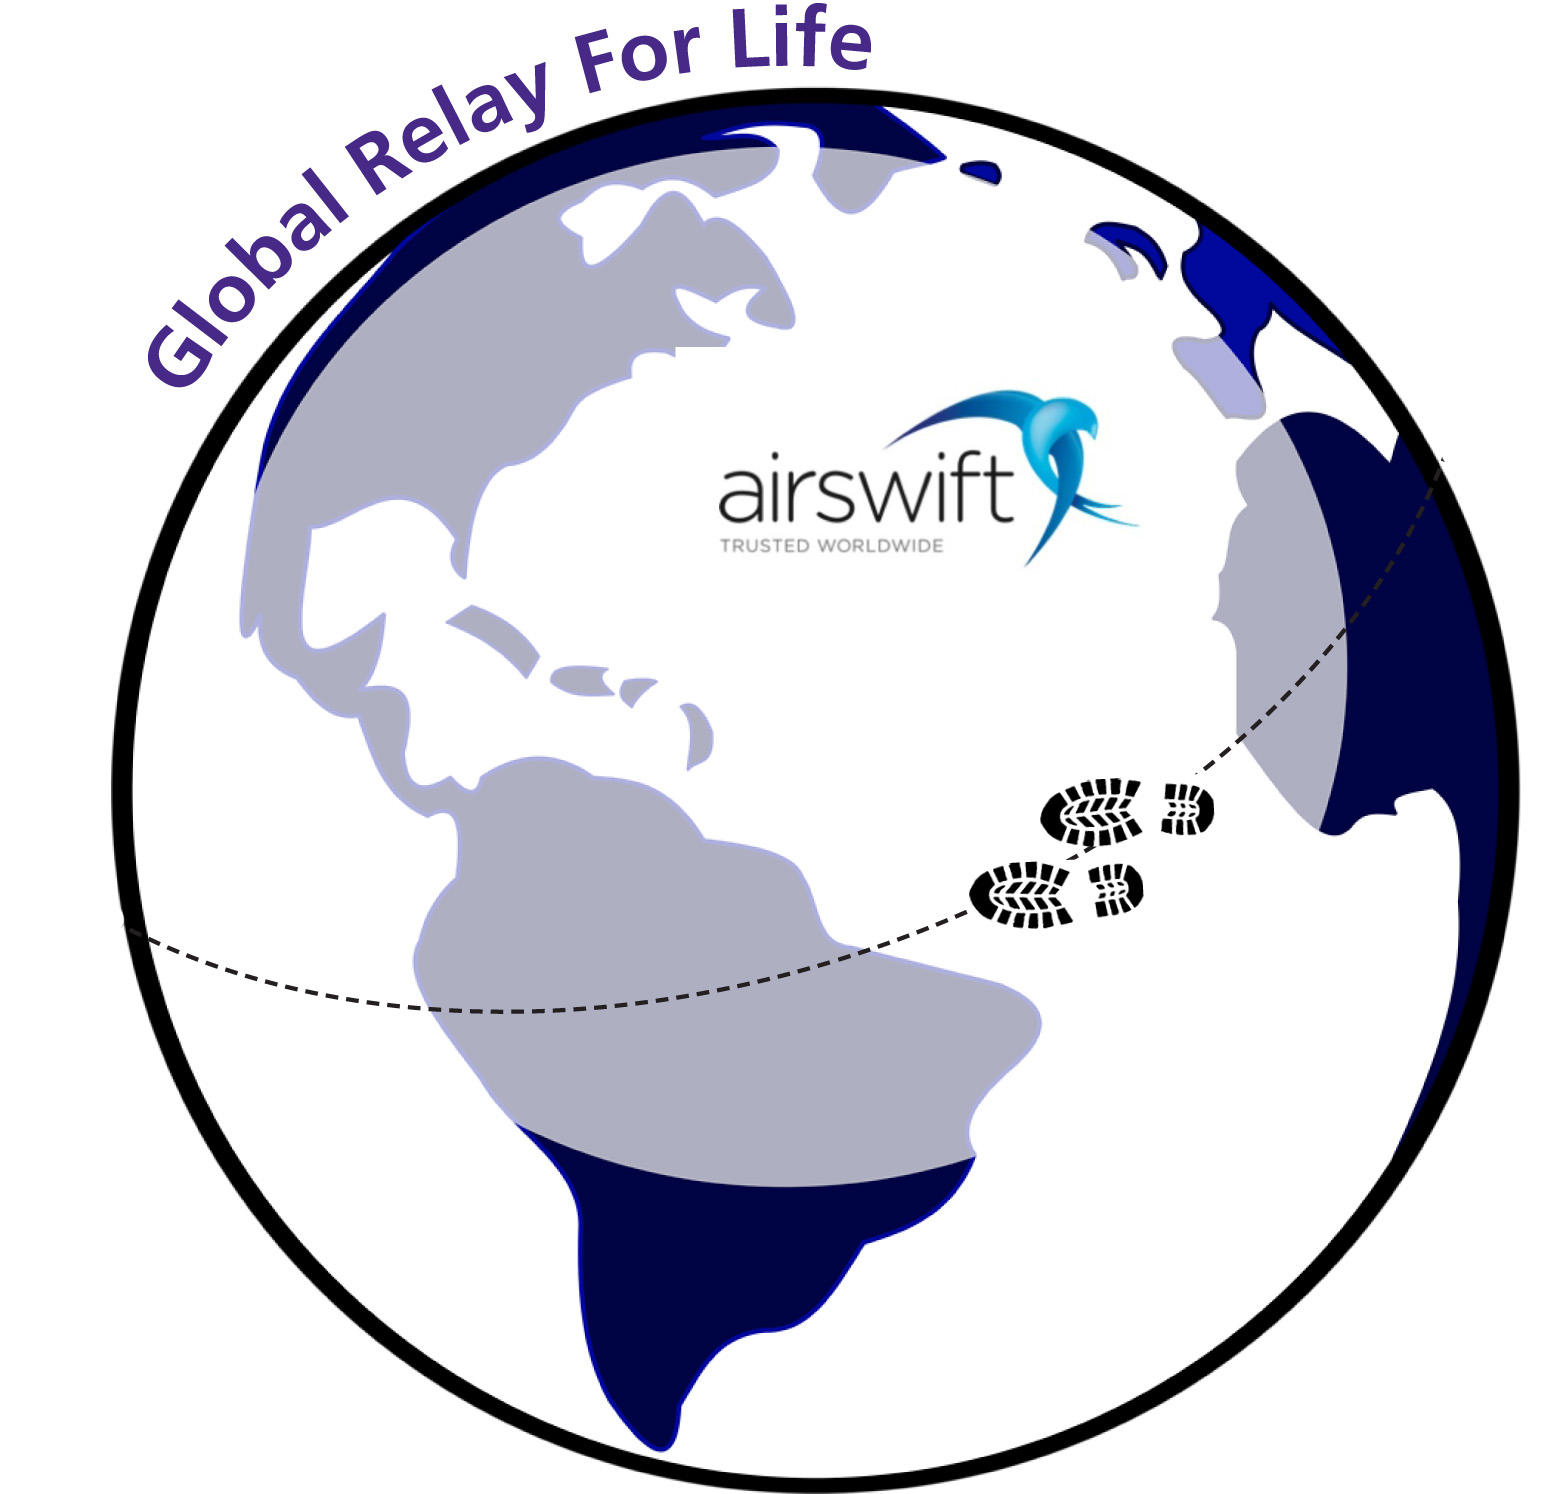 Global Relay For LIfe of Airswift Photo